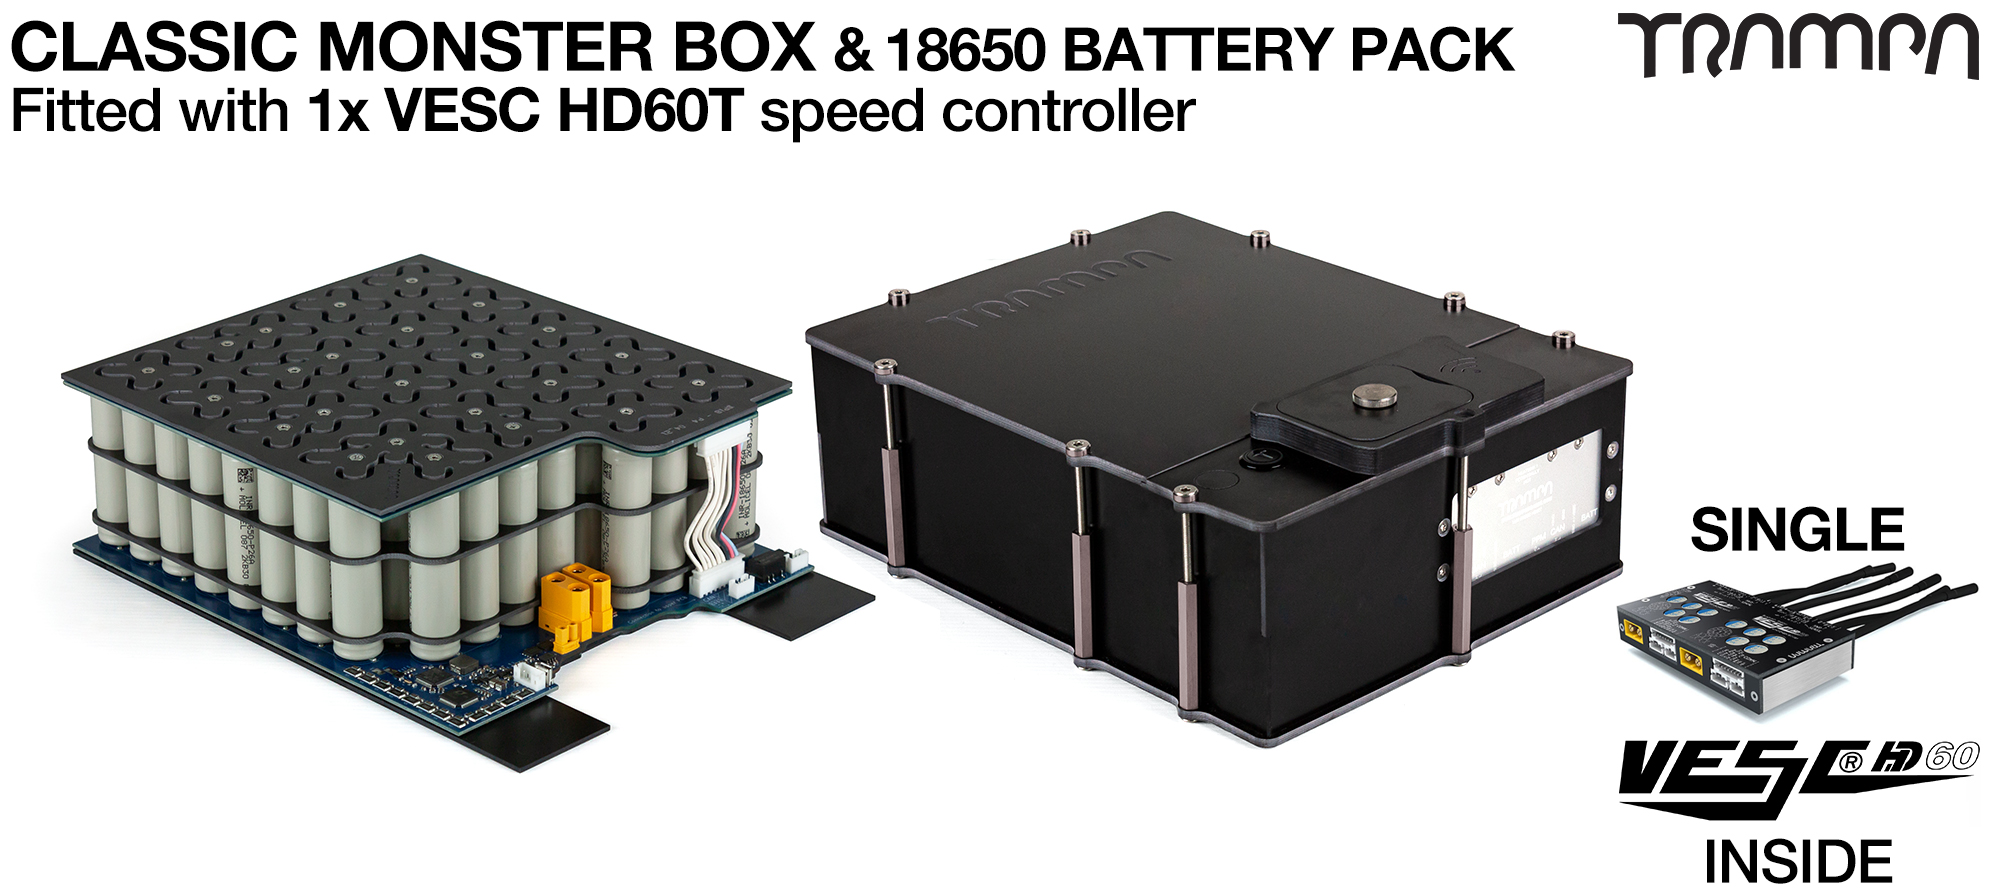 MONSTER Box MkIV - with 18650 PCB Pack, 1x VESC HD-60Twin & 84x 18650 cells 12s7p 21Ah - PCB based Battery Pack with Integrated Battery Management System (BMS) - UK CUSTOMERS ONLY